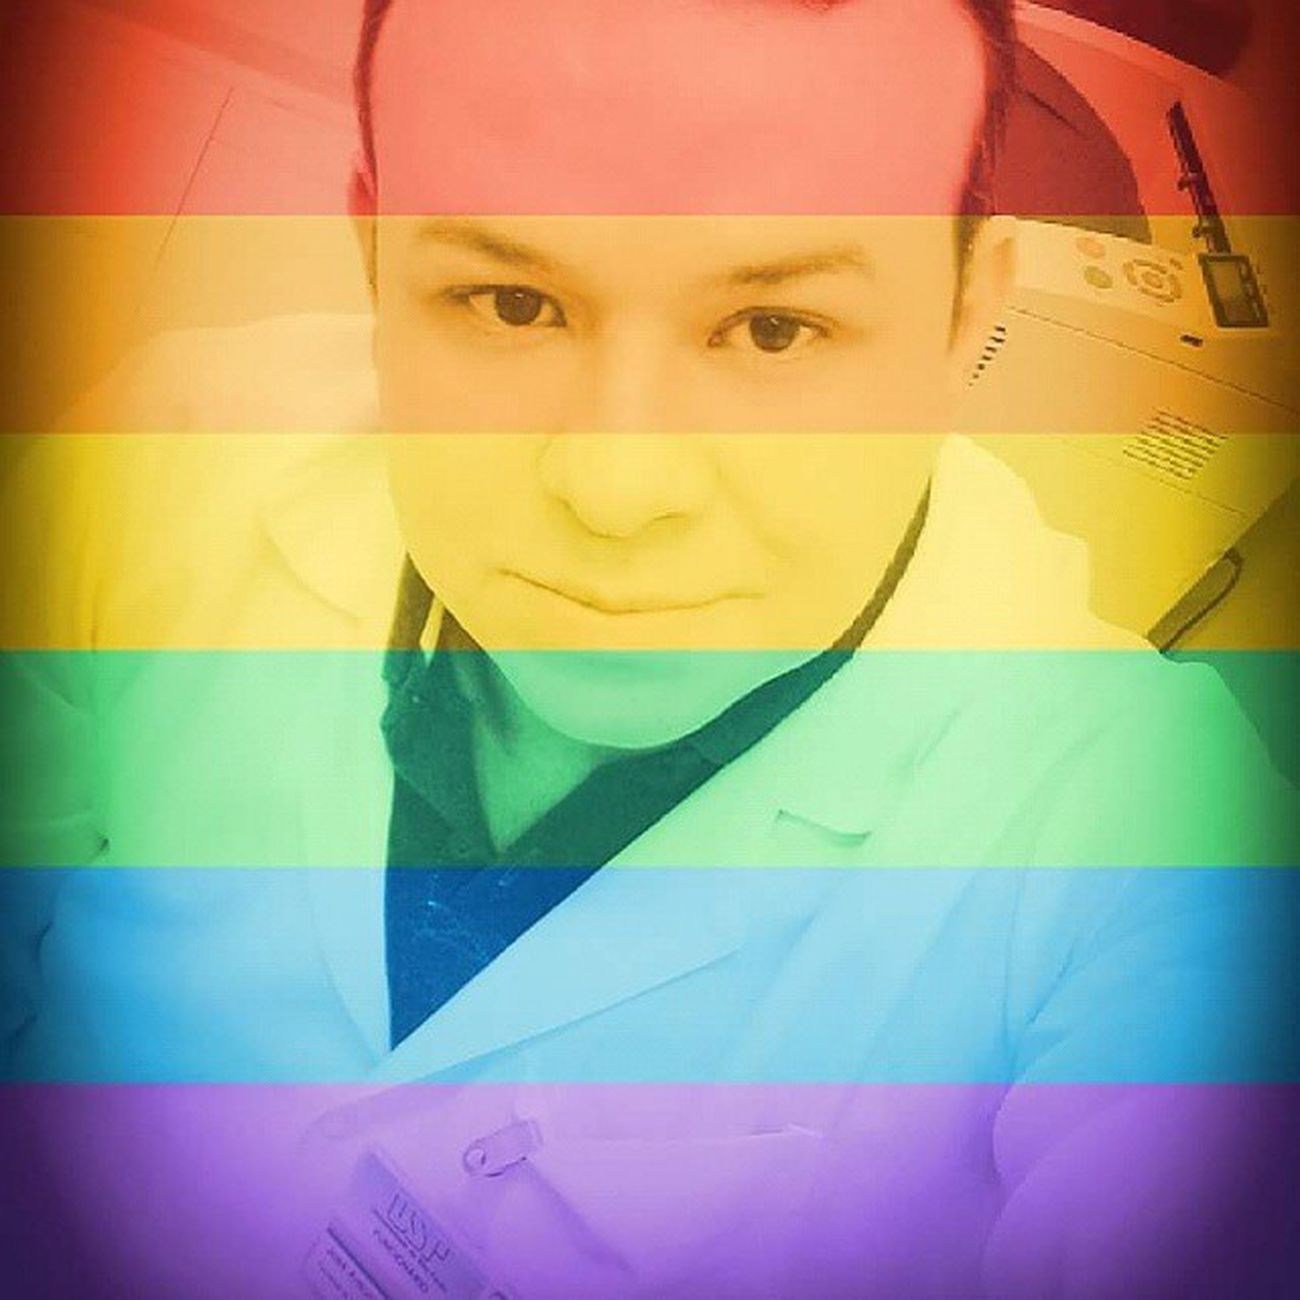 Lovewins Love Equality EqualityForAll Cute Fashion Loveislove TBT  Instadaily Selfie Marriageequality Snapchat Gaypride Celebratepride Pride Like4like Me Single Gaymarriage Repost Followme Likeforlike Proud Gay Finally happy history all50 equalityforward meninasemeninos